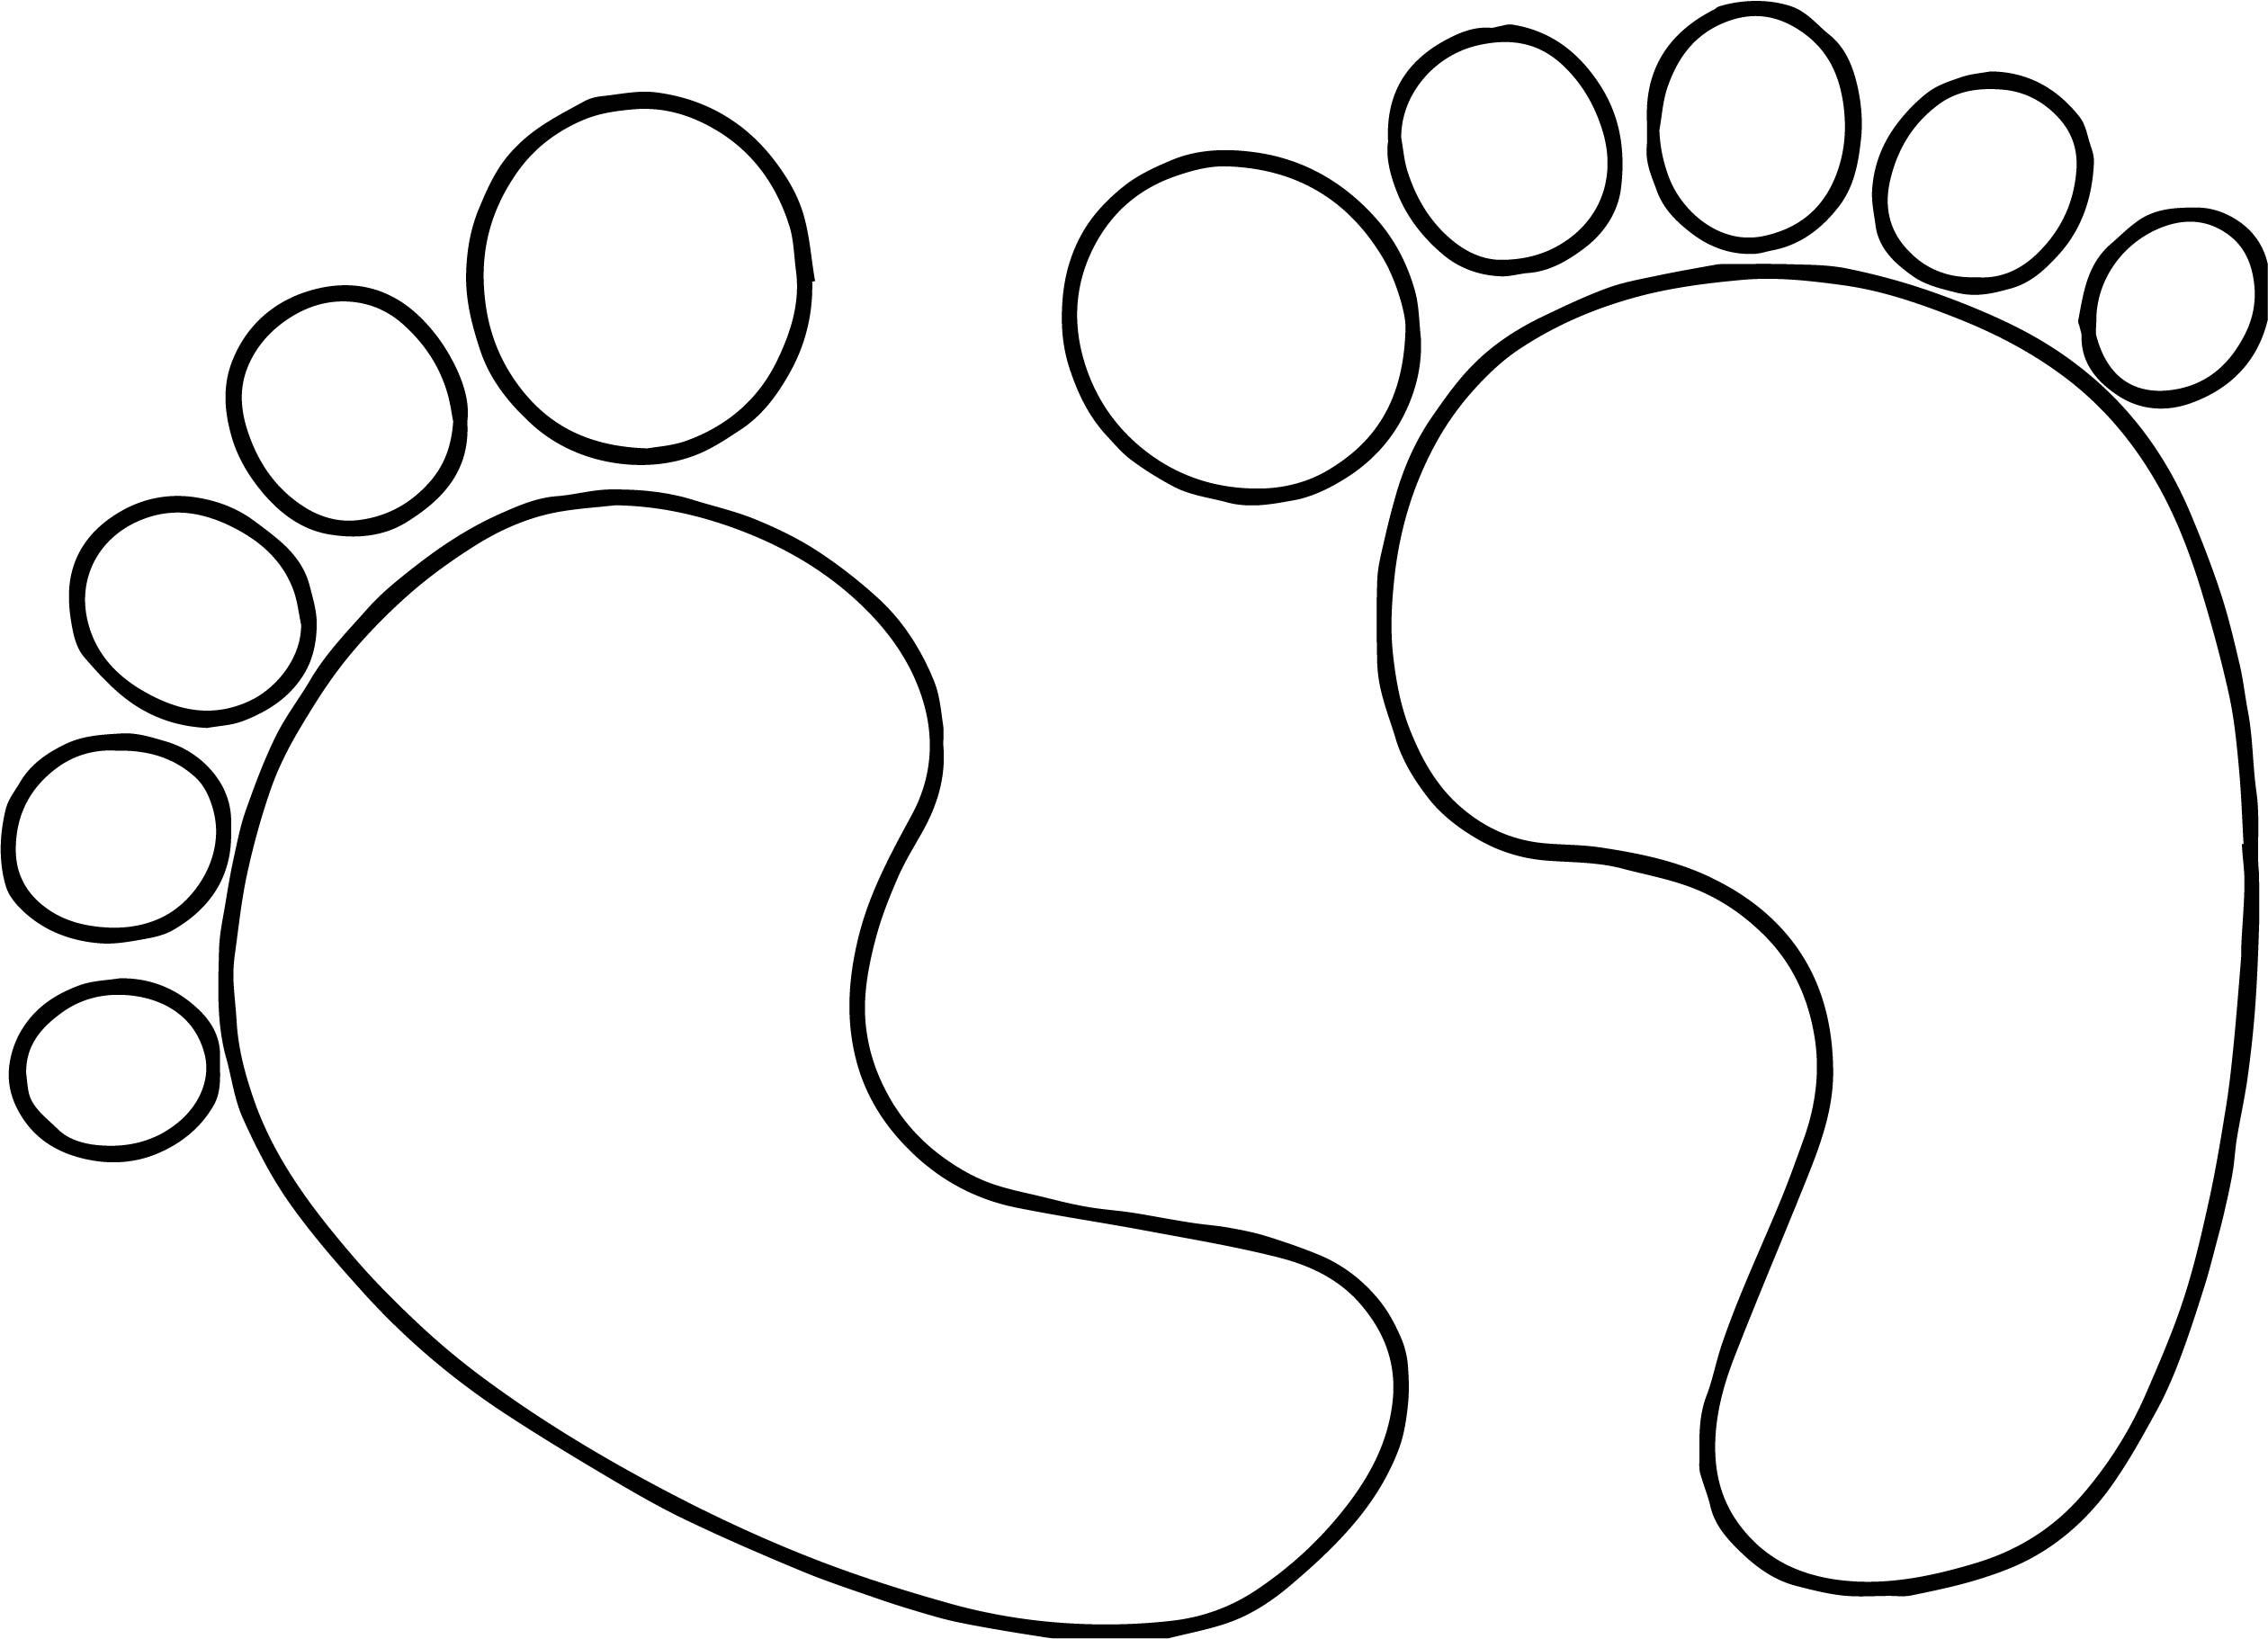 feet coloring pages - baby footprint drawing at free for